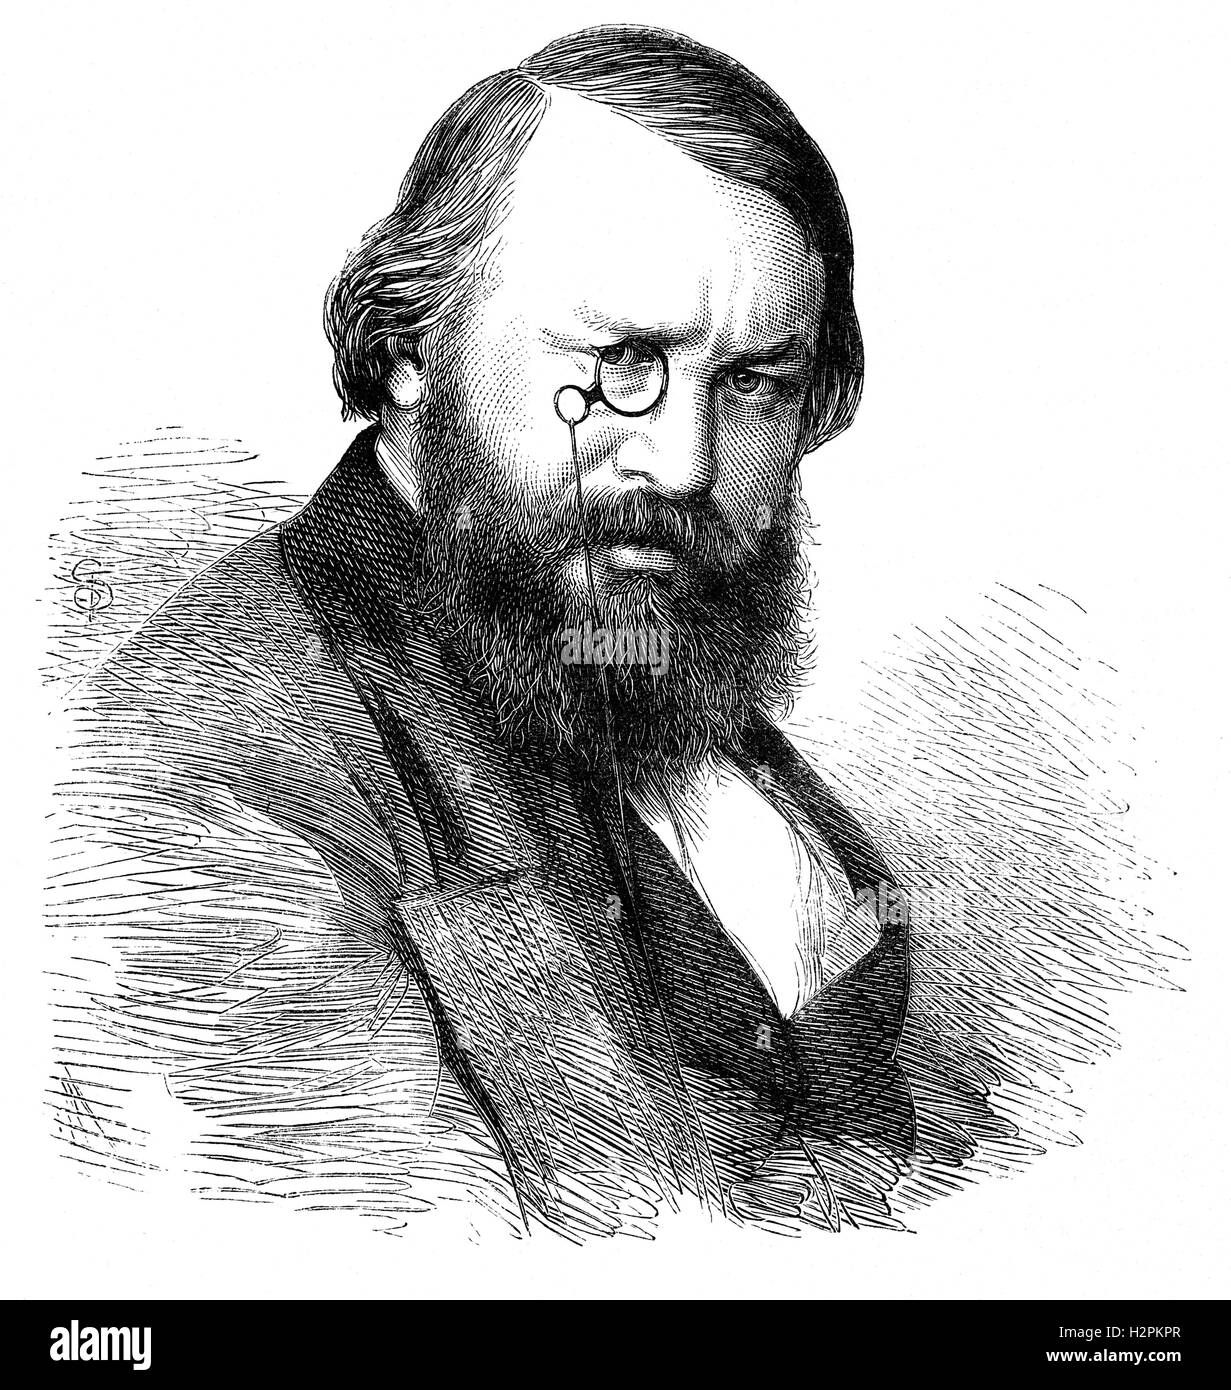 Sir Alexander James Beresford Beresford Hope PC (1820 –1887), known as Alexander Hope was a British author and Conservative Stock Photo